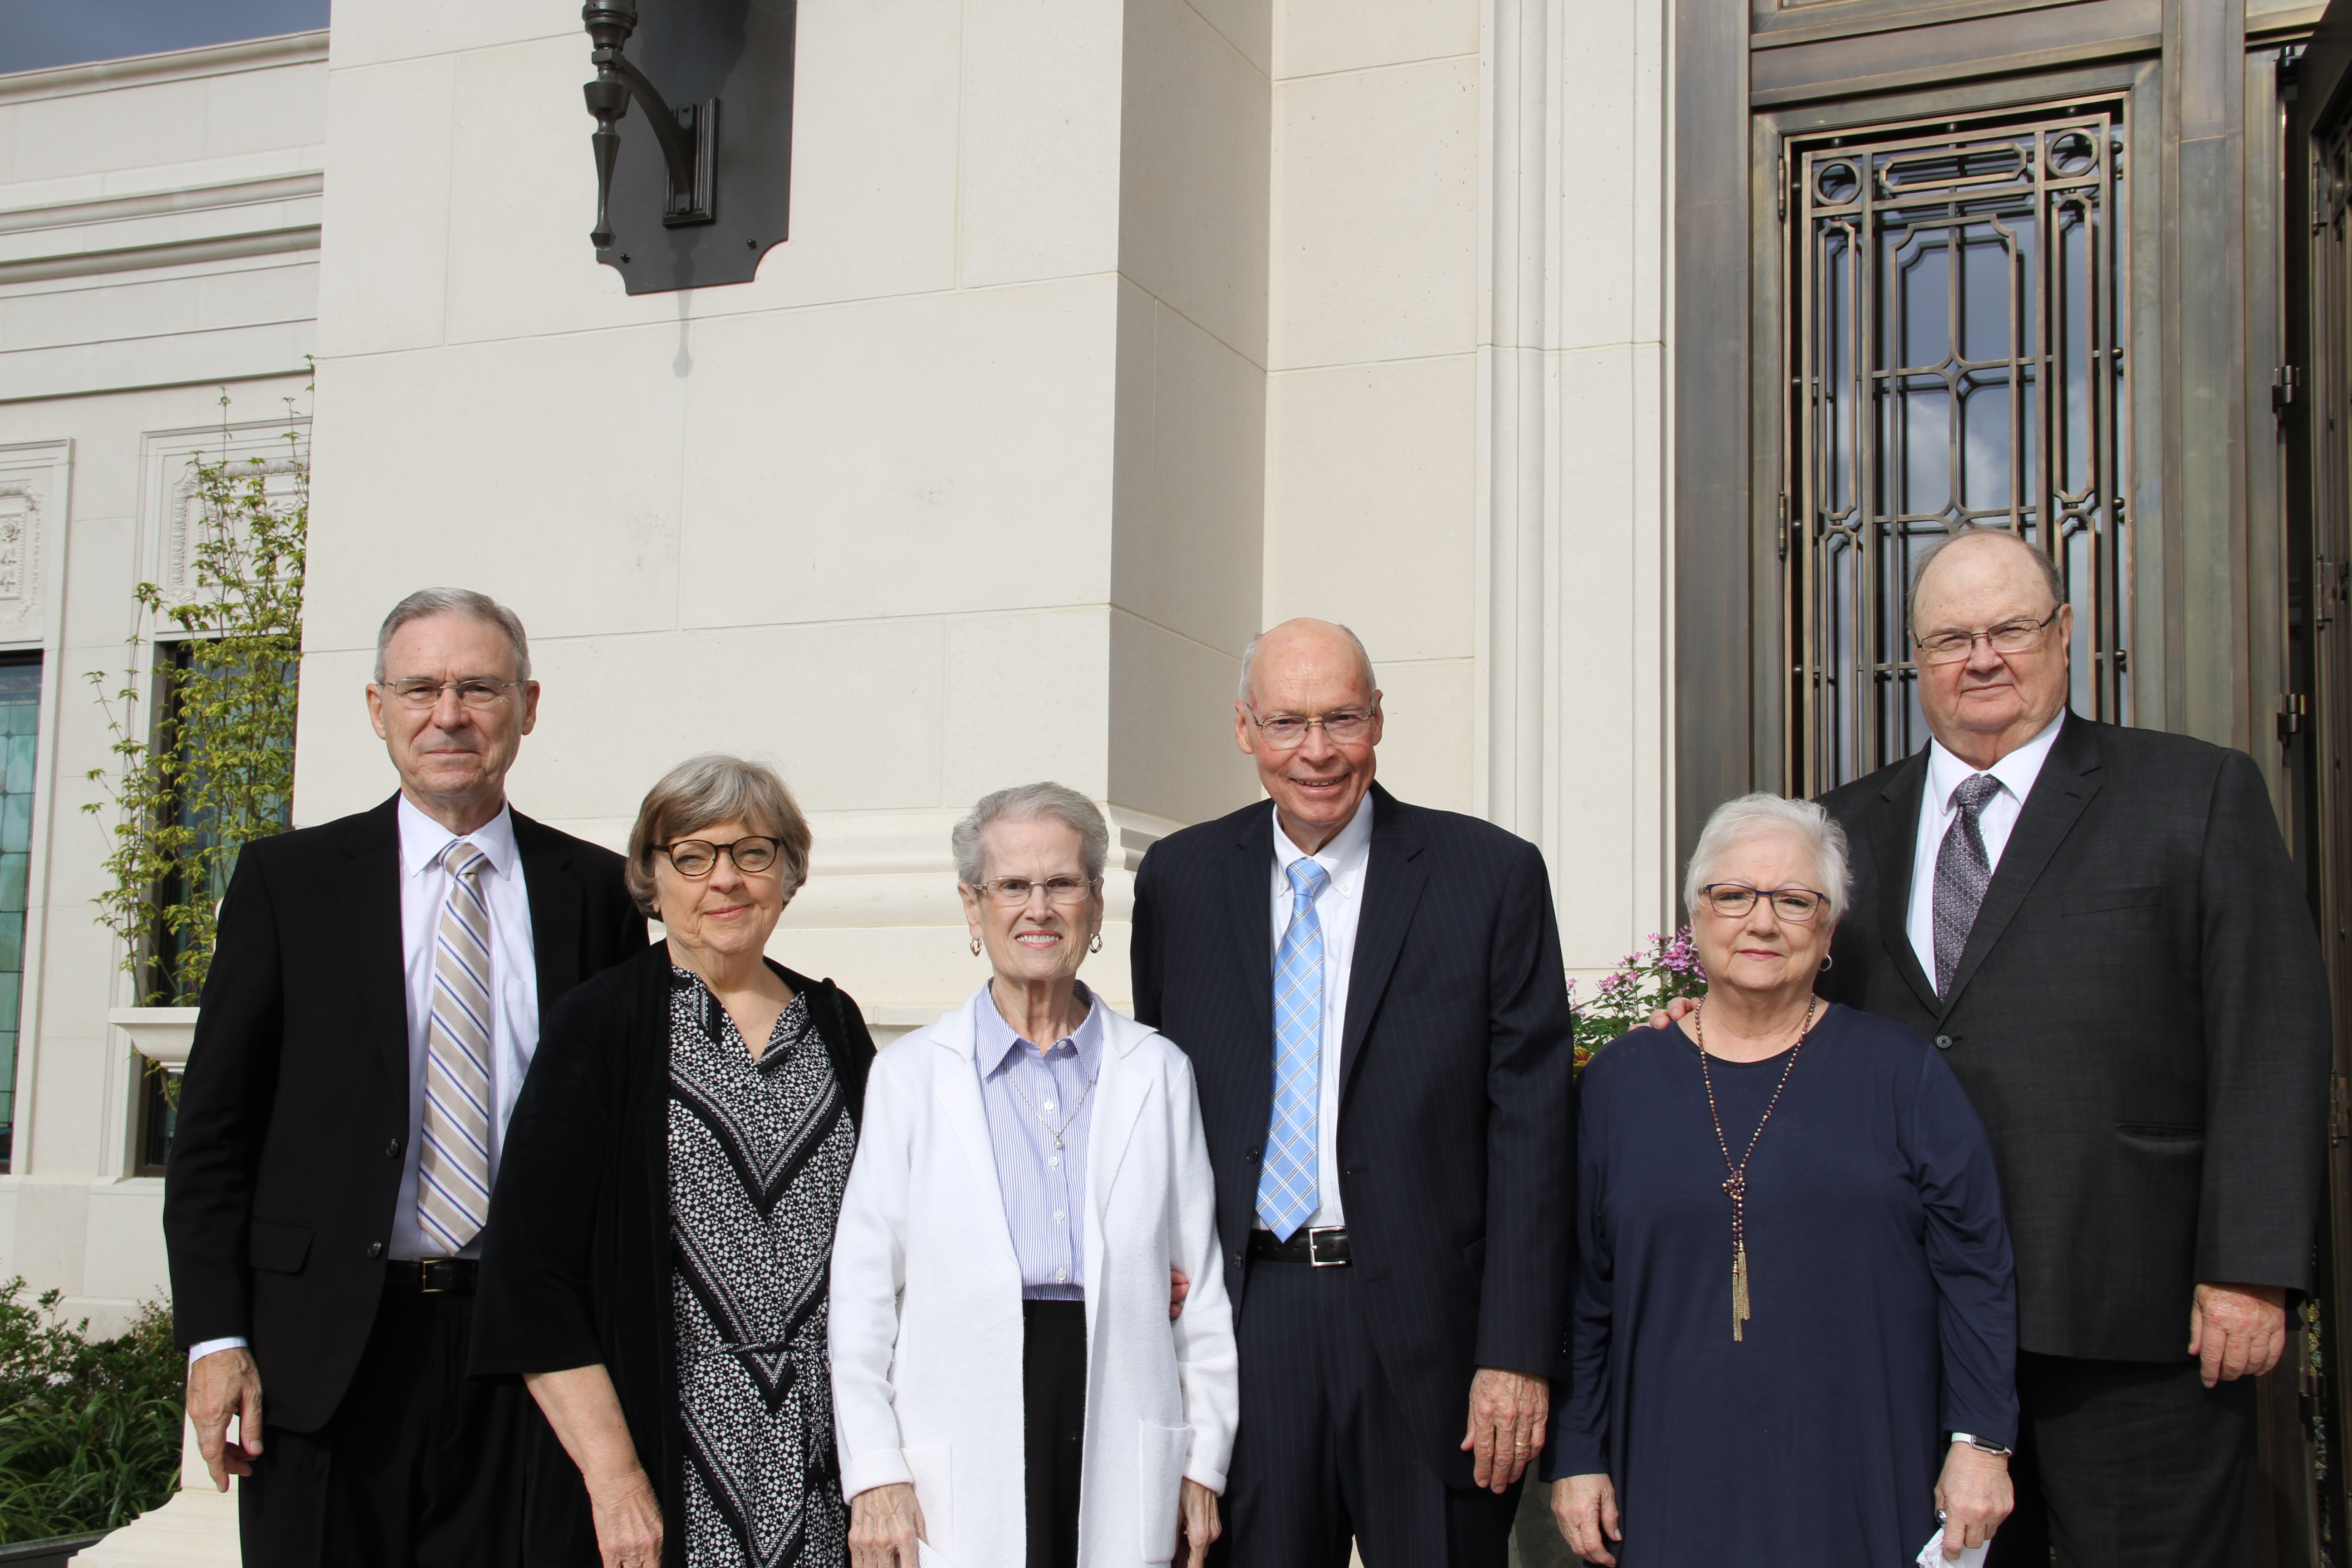 Left, Jim and Marlena Griffin, Elmer and Doris Black, and Evan and Lou Ann Nebeker, former temple presidents, pose outside the Memphis Tennessee Temple on May 5, 2019 prior to the rededication.